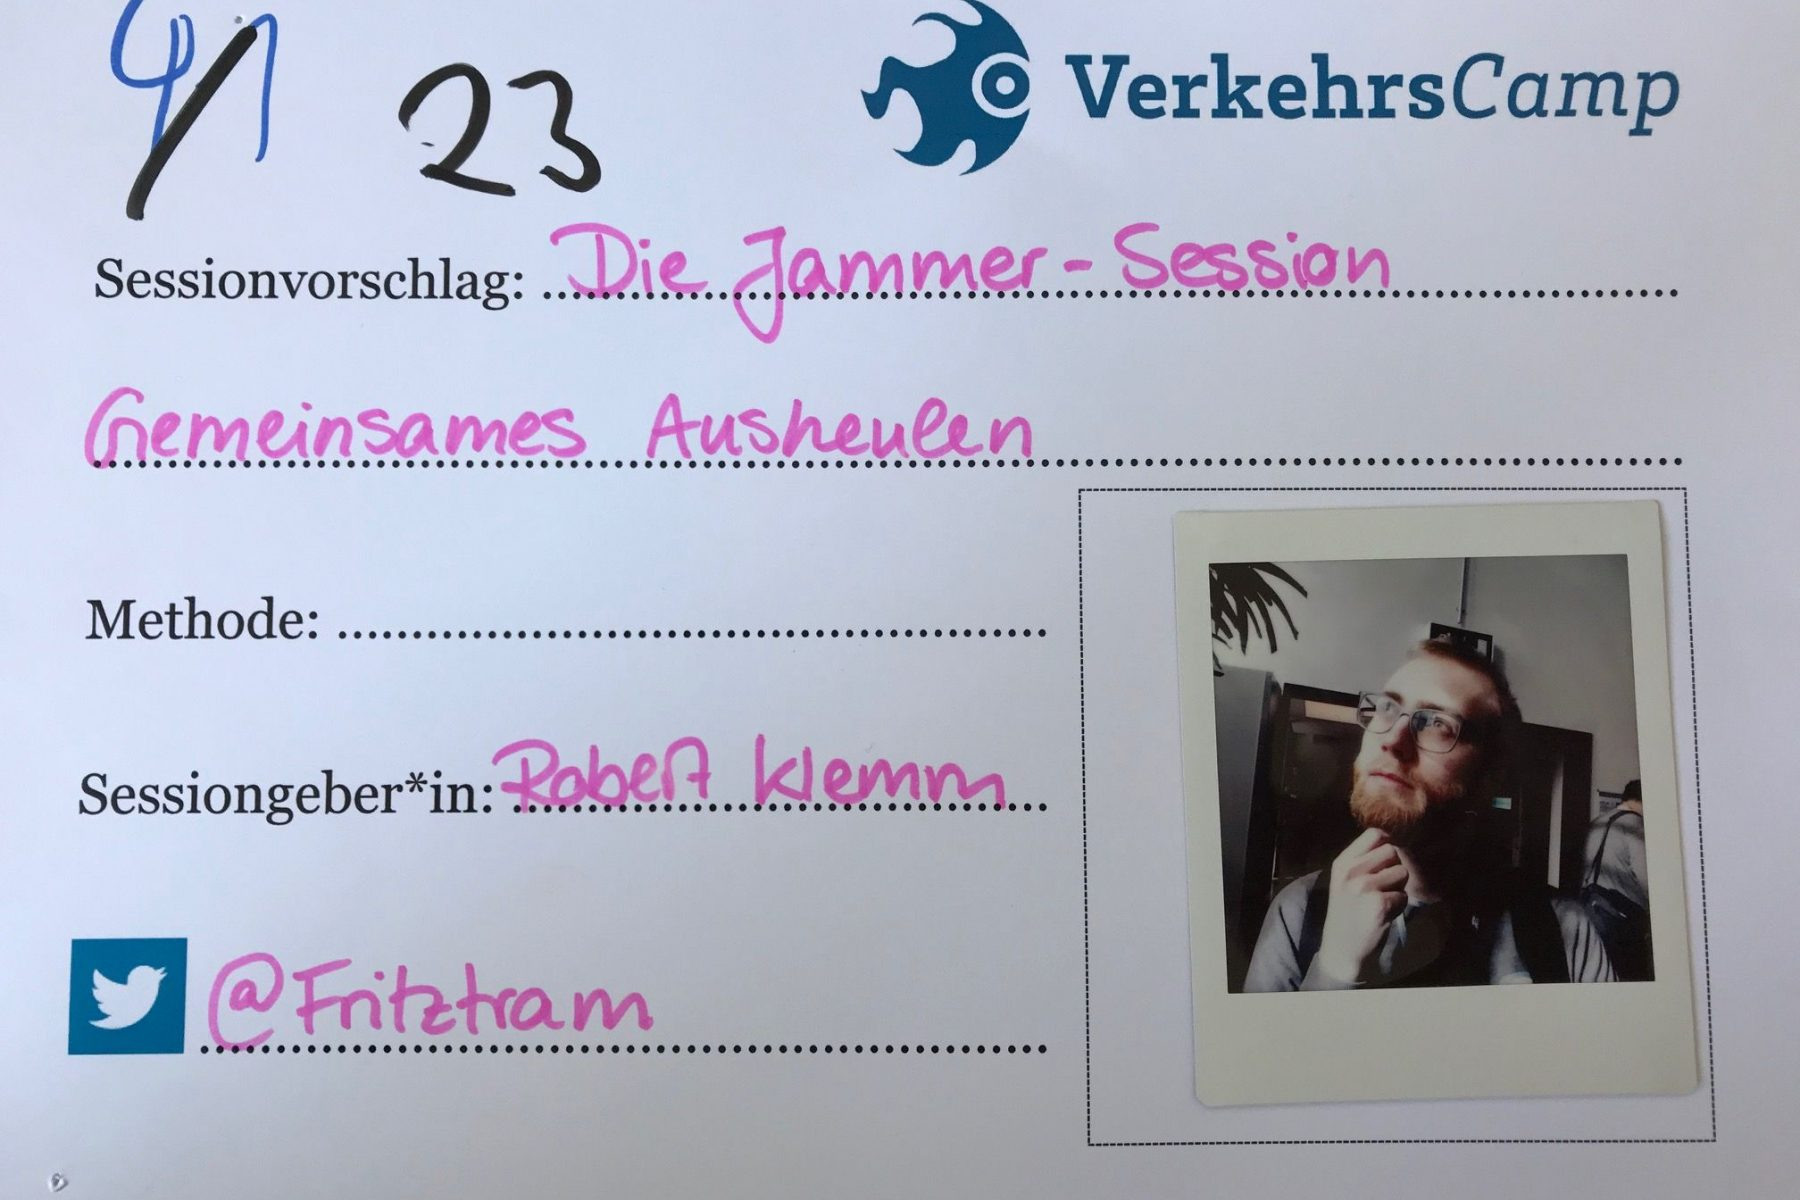 Jammer-Session mit Robert Klemm